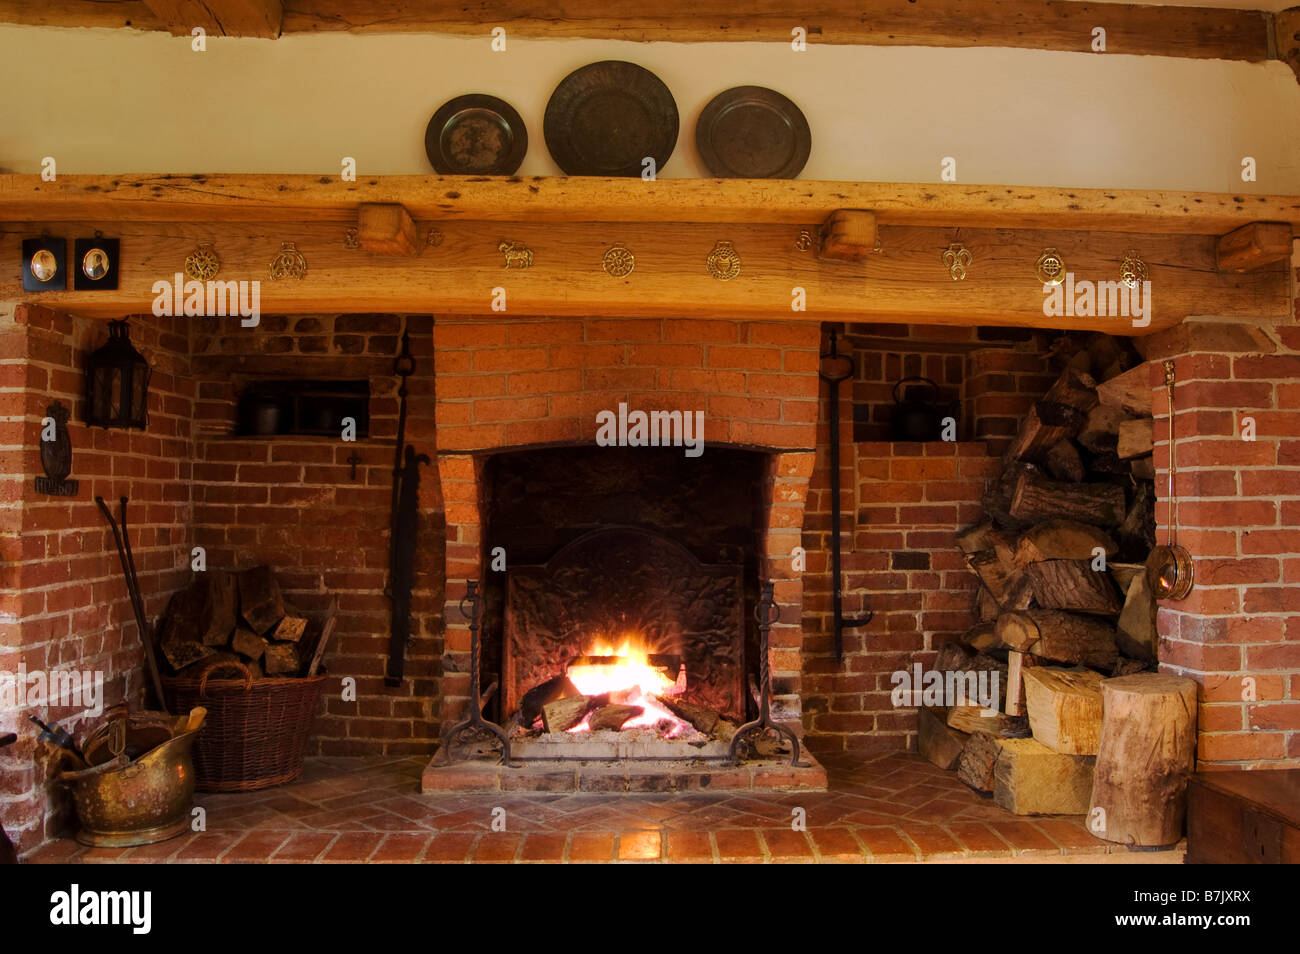 inglenook fireplace Stock Photo, Royalty Free Image: 21929150 - Alamy